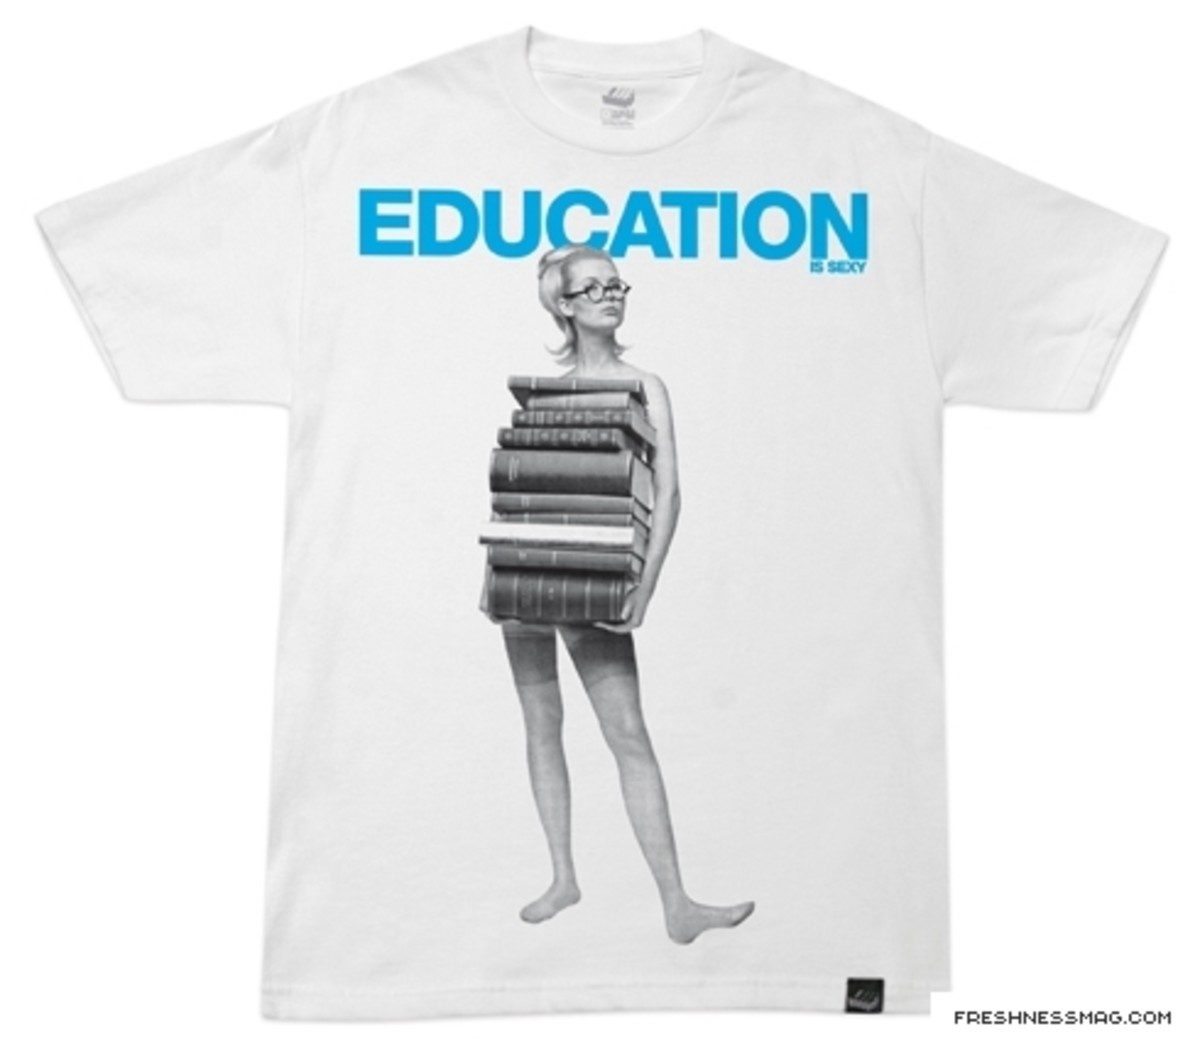 Alphanumeric (A#) - Education is Sexy T-Shirt